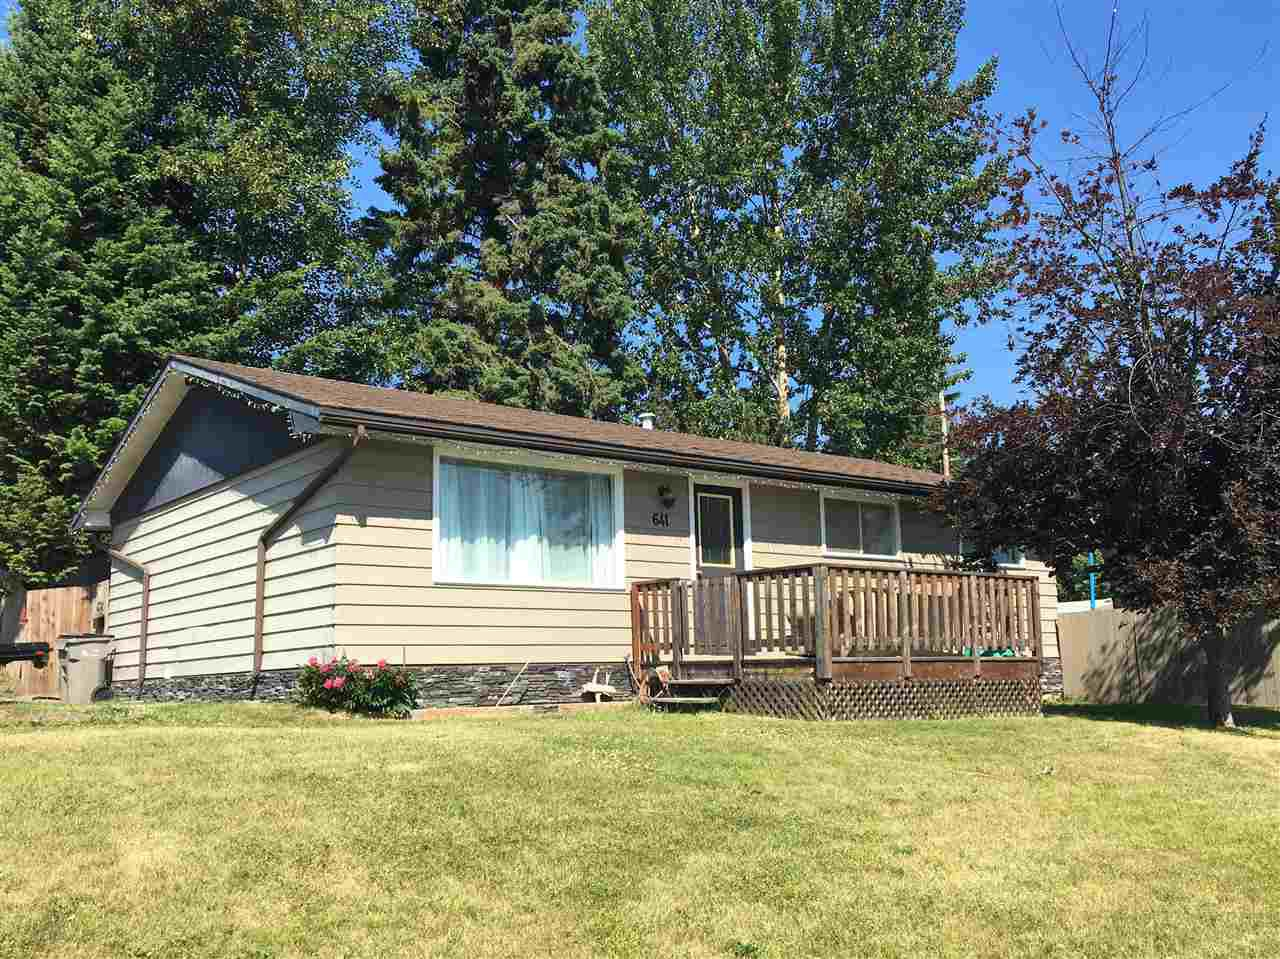 """Photo 7: Photos: 641 PIERCE Street in Quesnel: Quesnel - Town House for sale in """"UPLANDS"""" (Quesnel (Zone 28))  : MLS®# R2383878"""